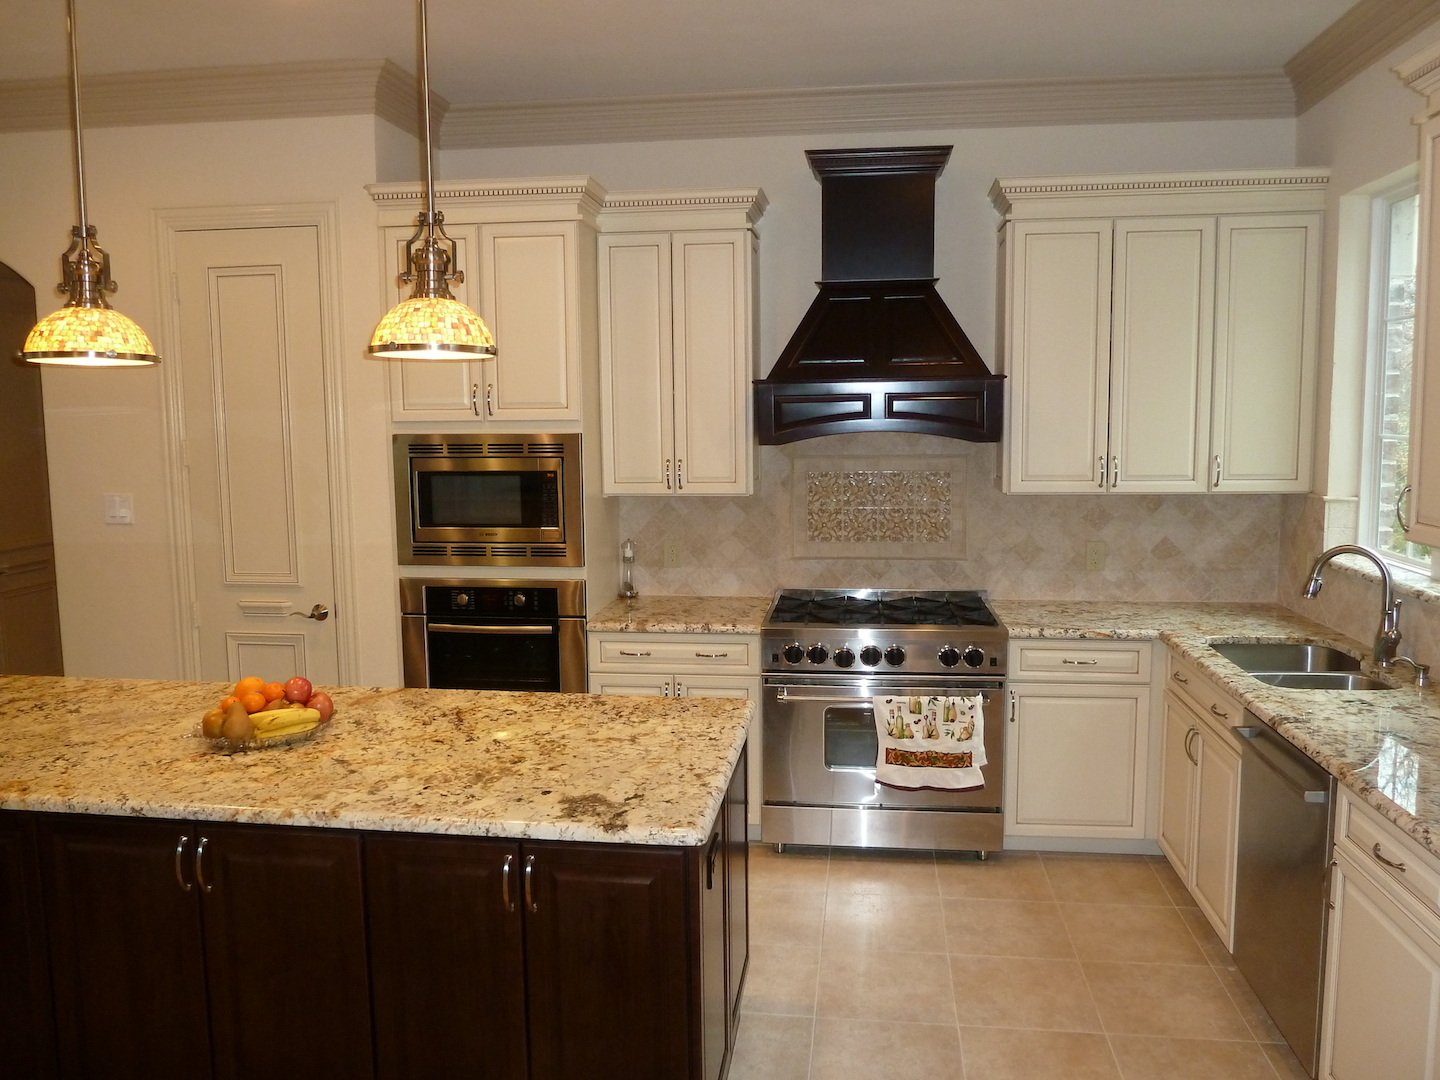 Complete Kitchen Redesign and Remodeling in Flower Mound